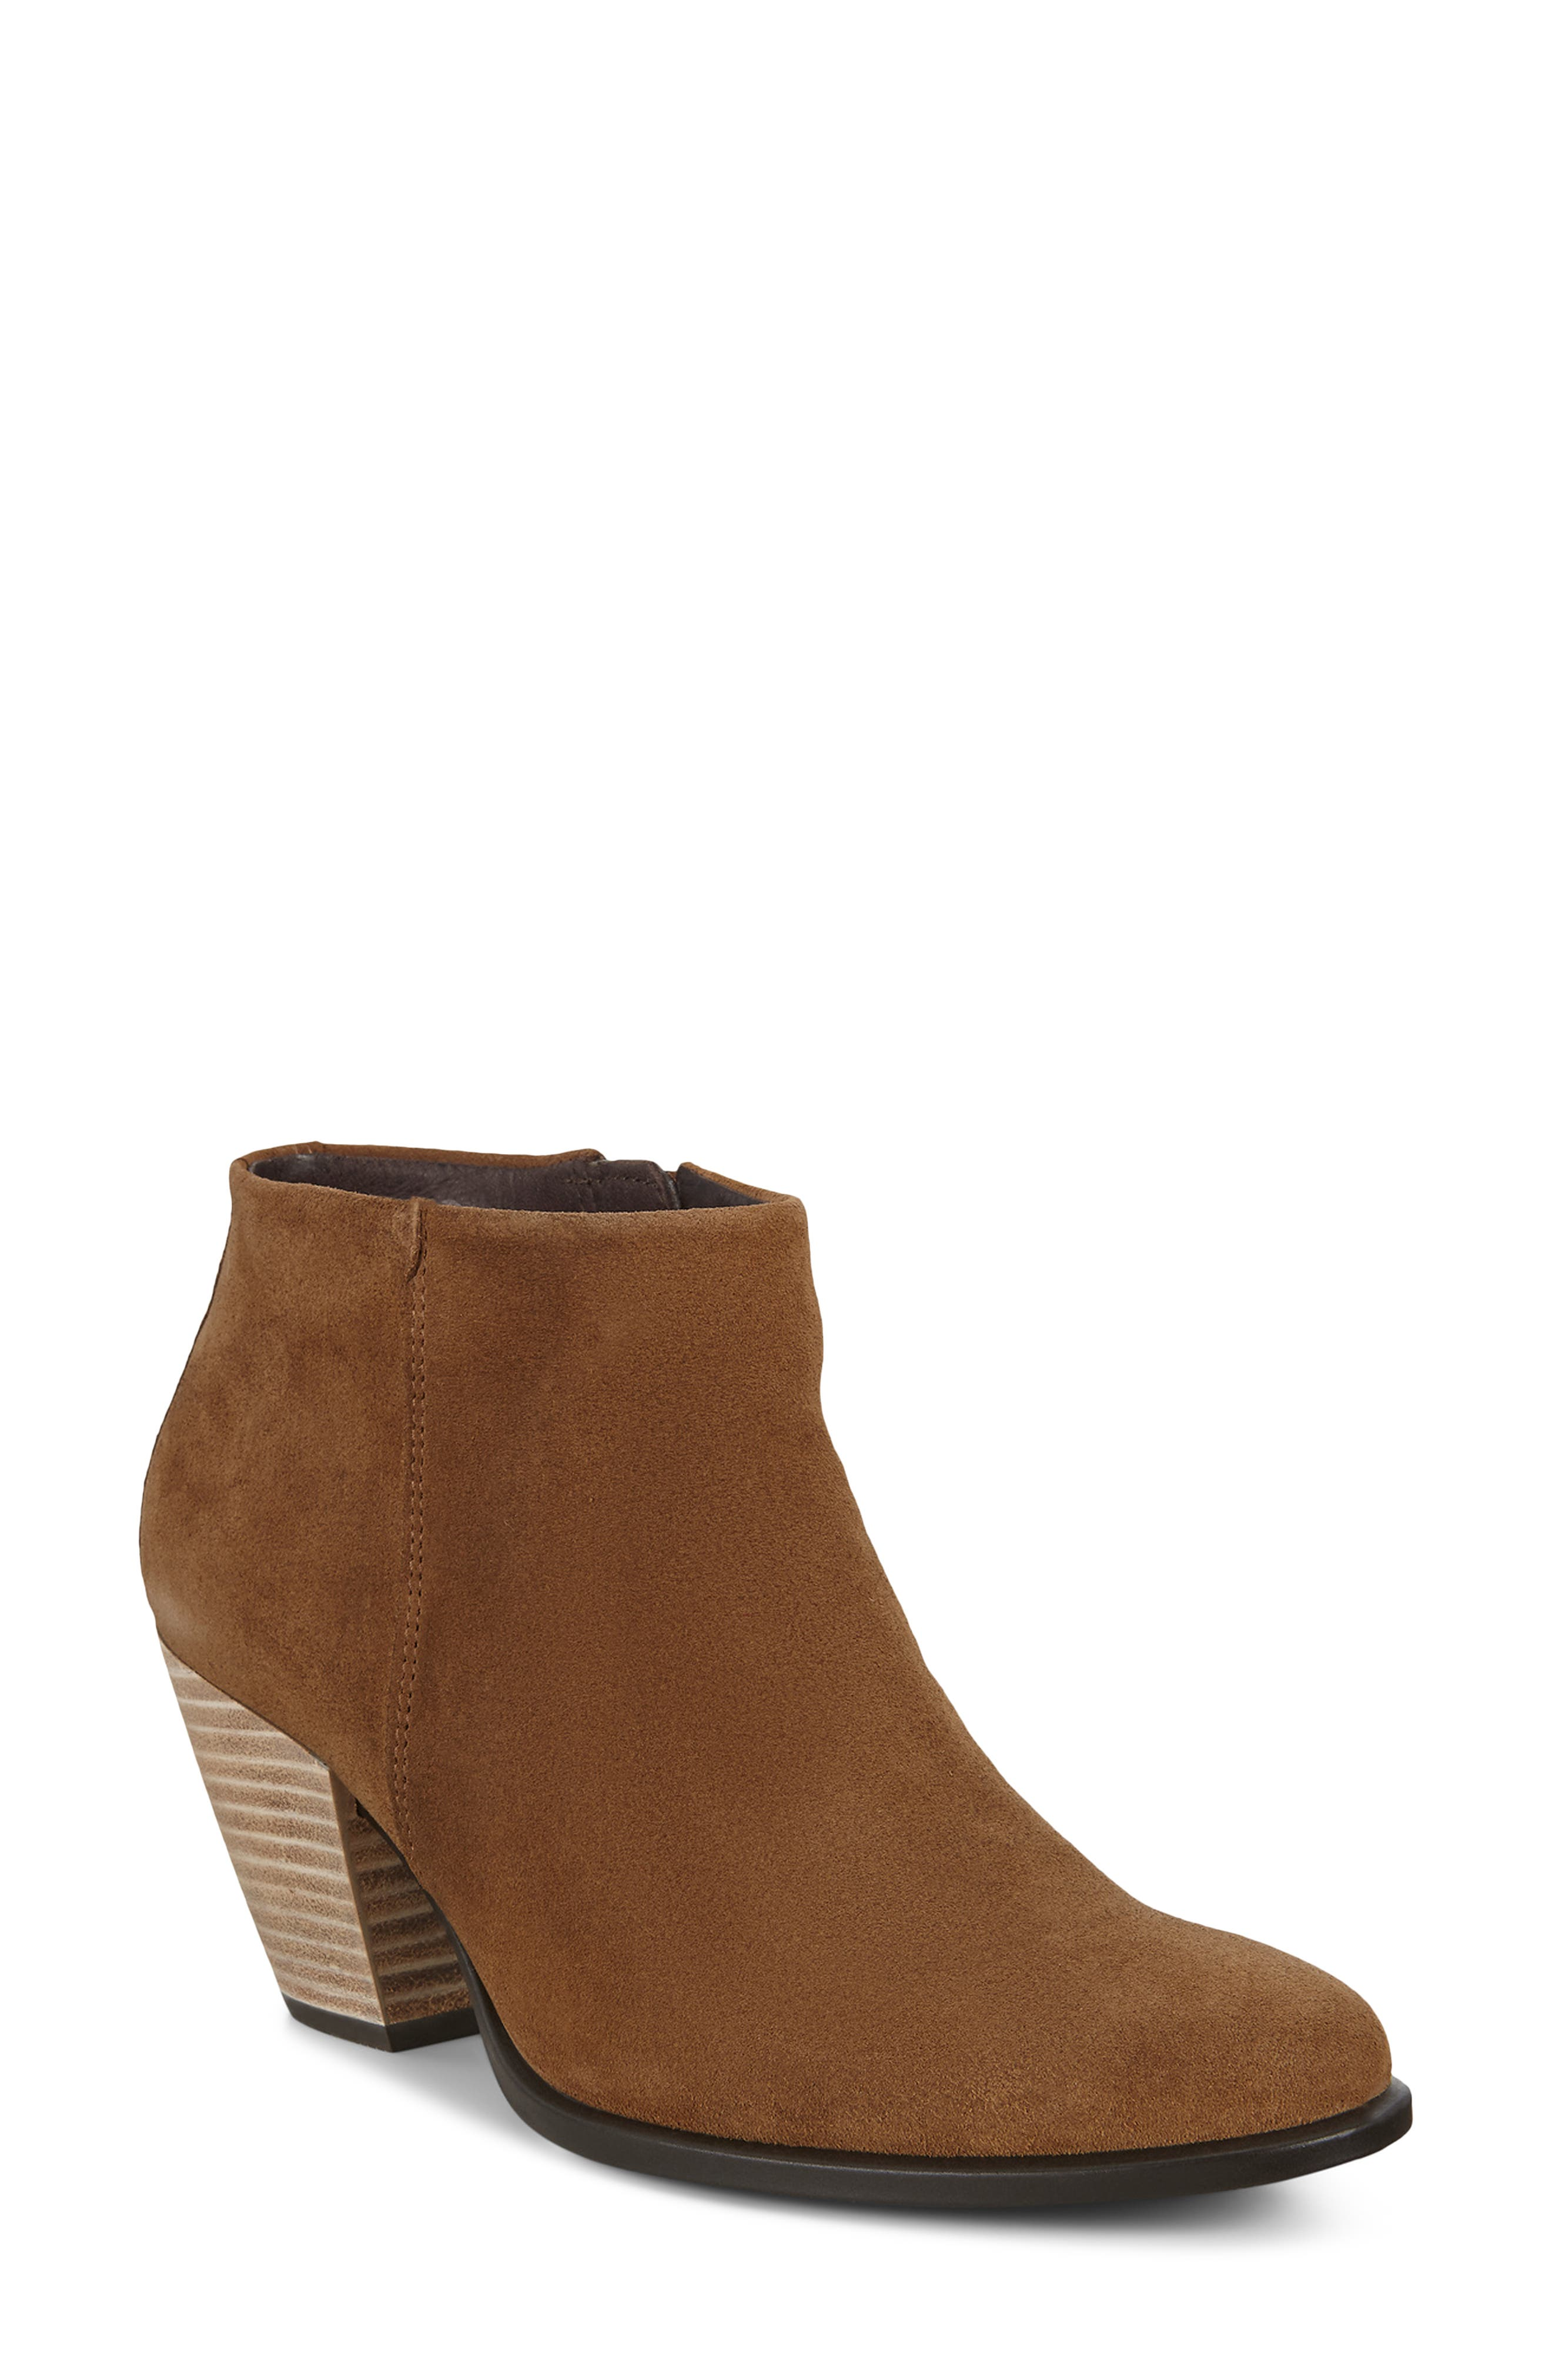 Trary Womens Ankle Boots Round Toe Low Heel Bootie for Women